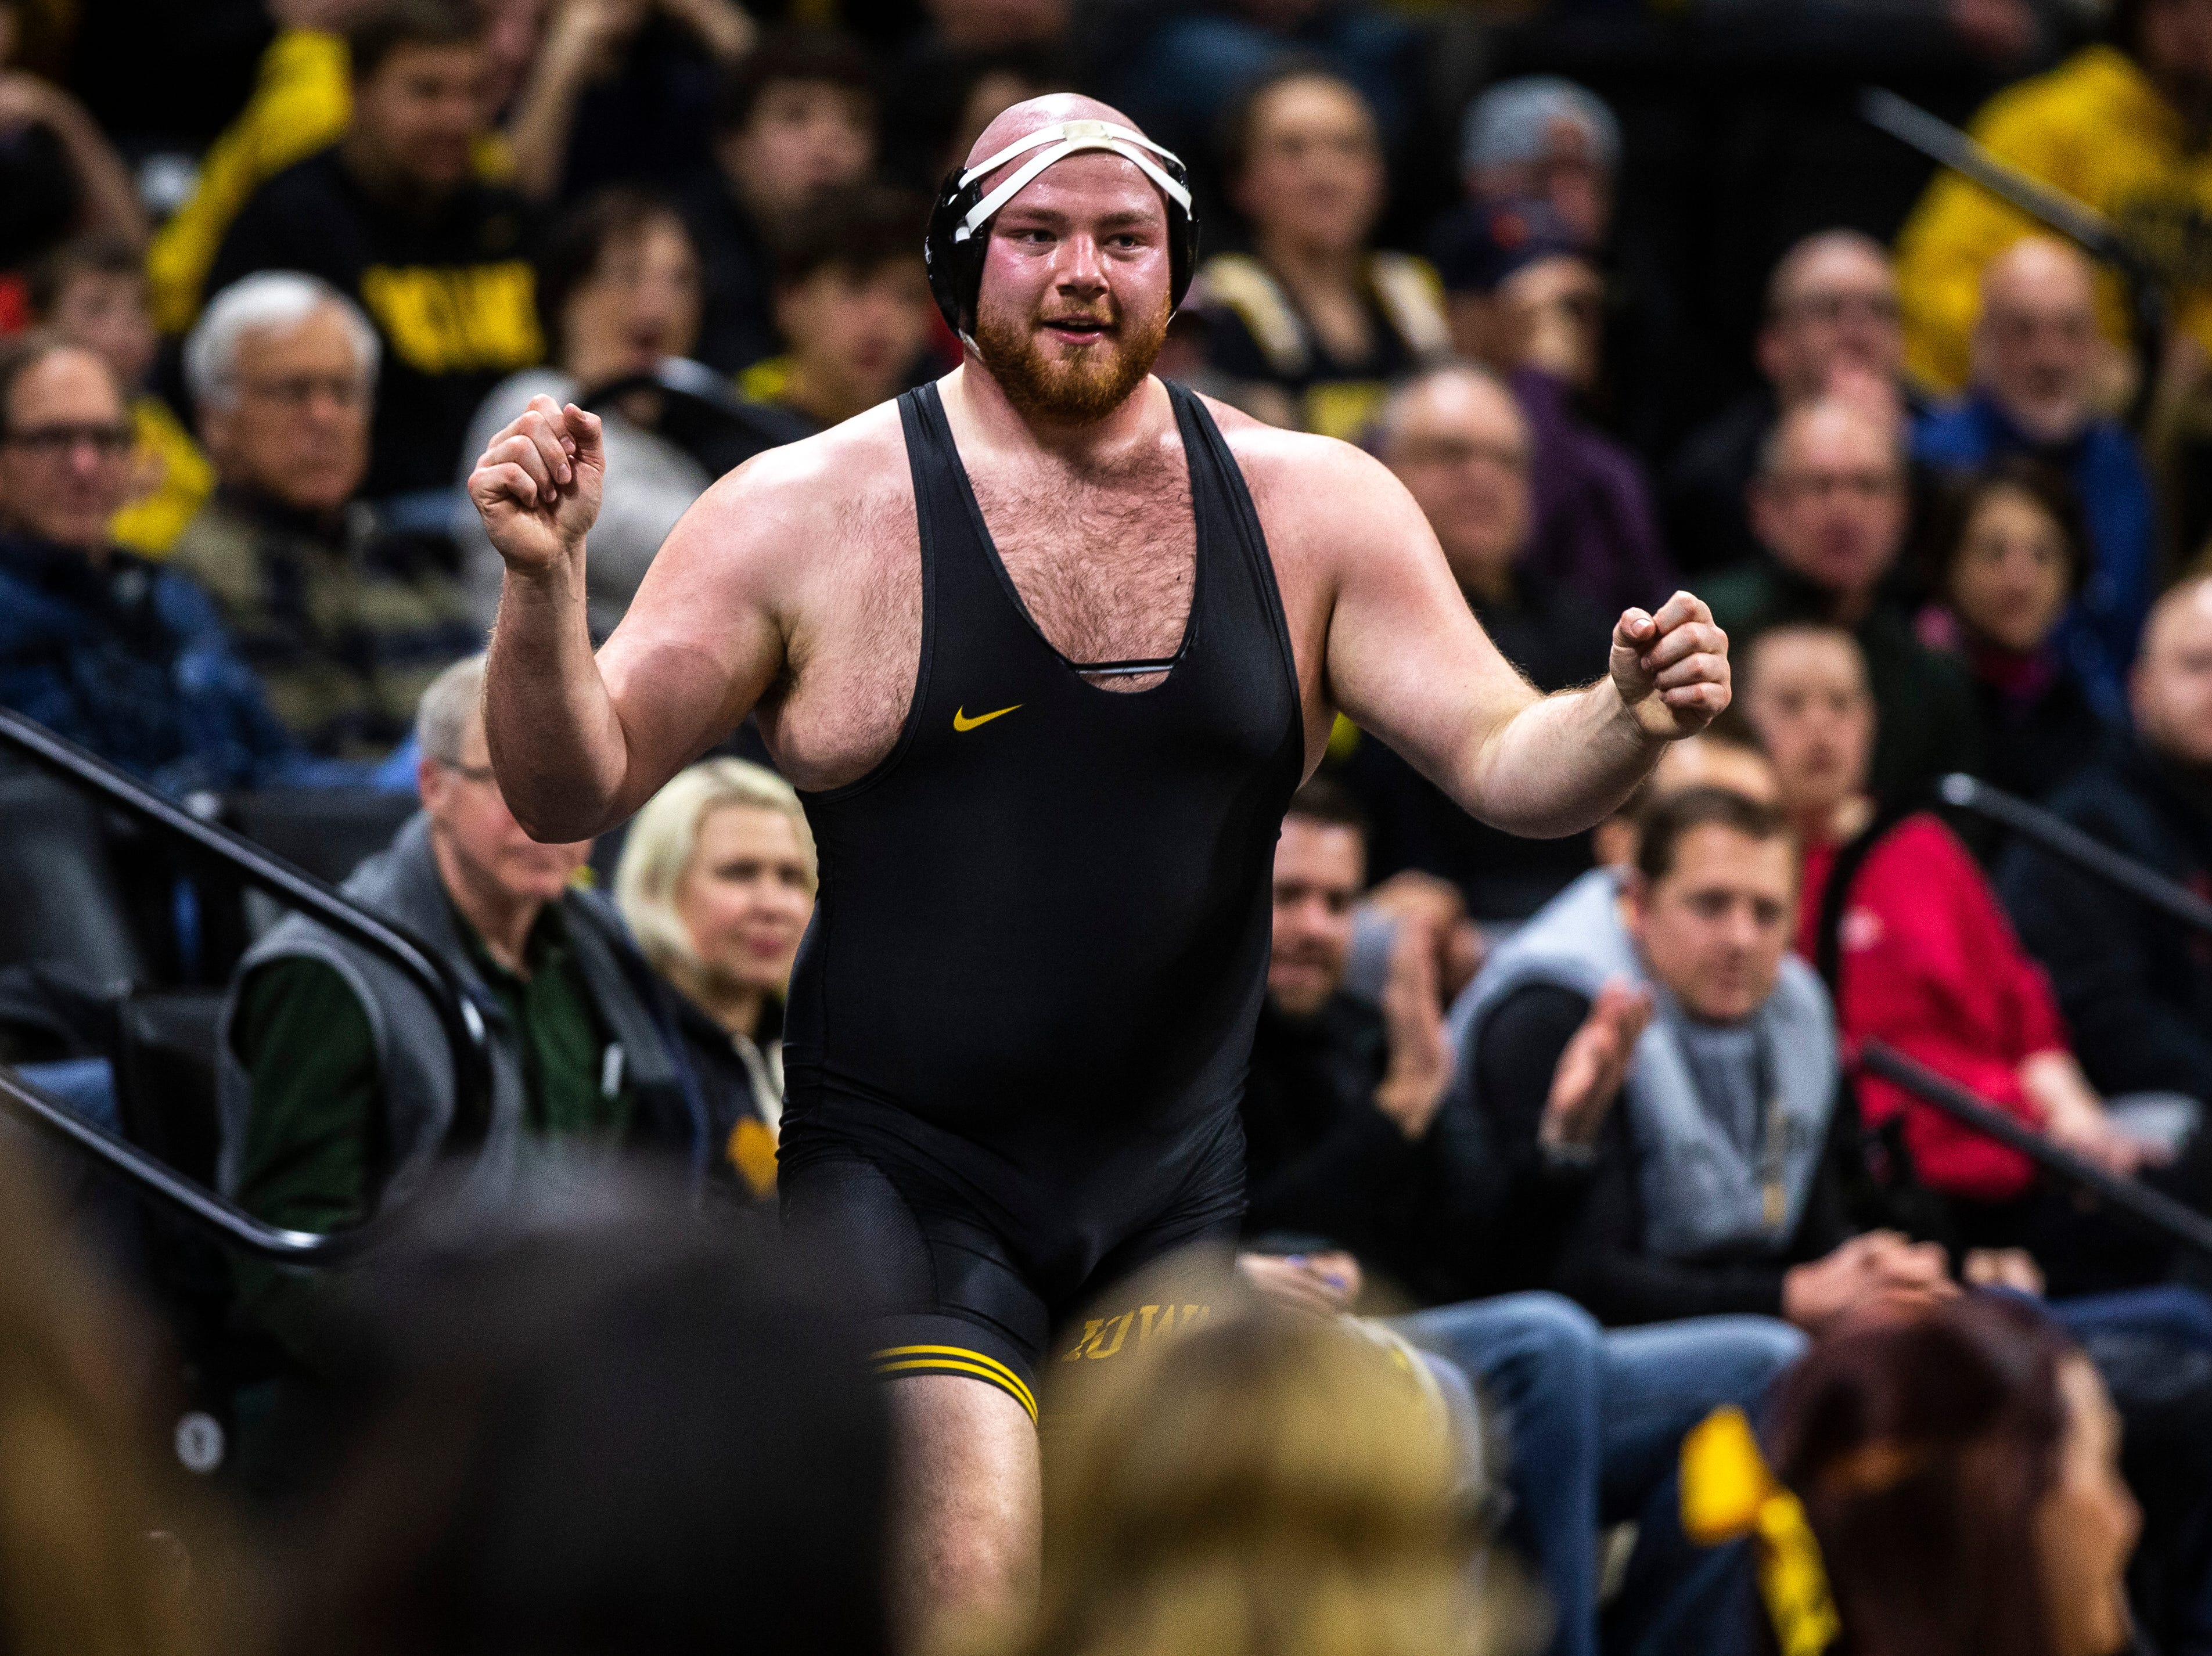 Iowa's Sam Stoll reacts after getting pushed off the mat during a match at 285 against Maryland during a NCAA Big Ten Conference wrestling dual on Friday, Feb. 8, 2019 at Carver-Hawkeye Arena in Iowa City, Iowa.